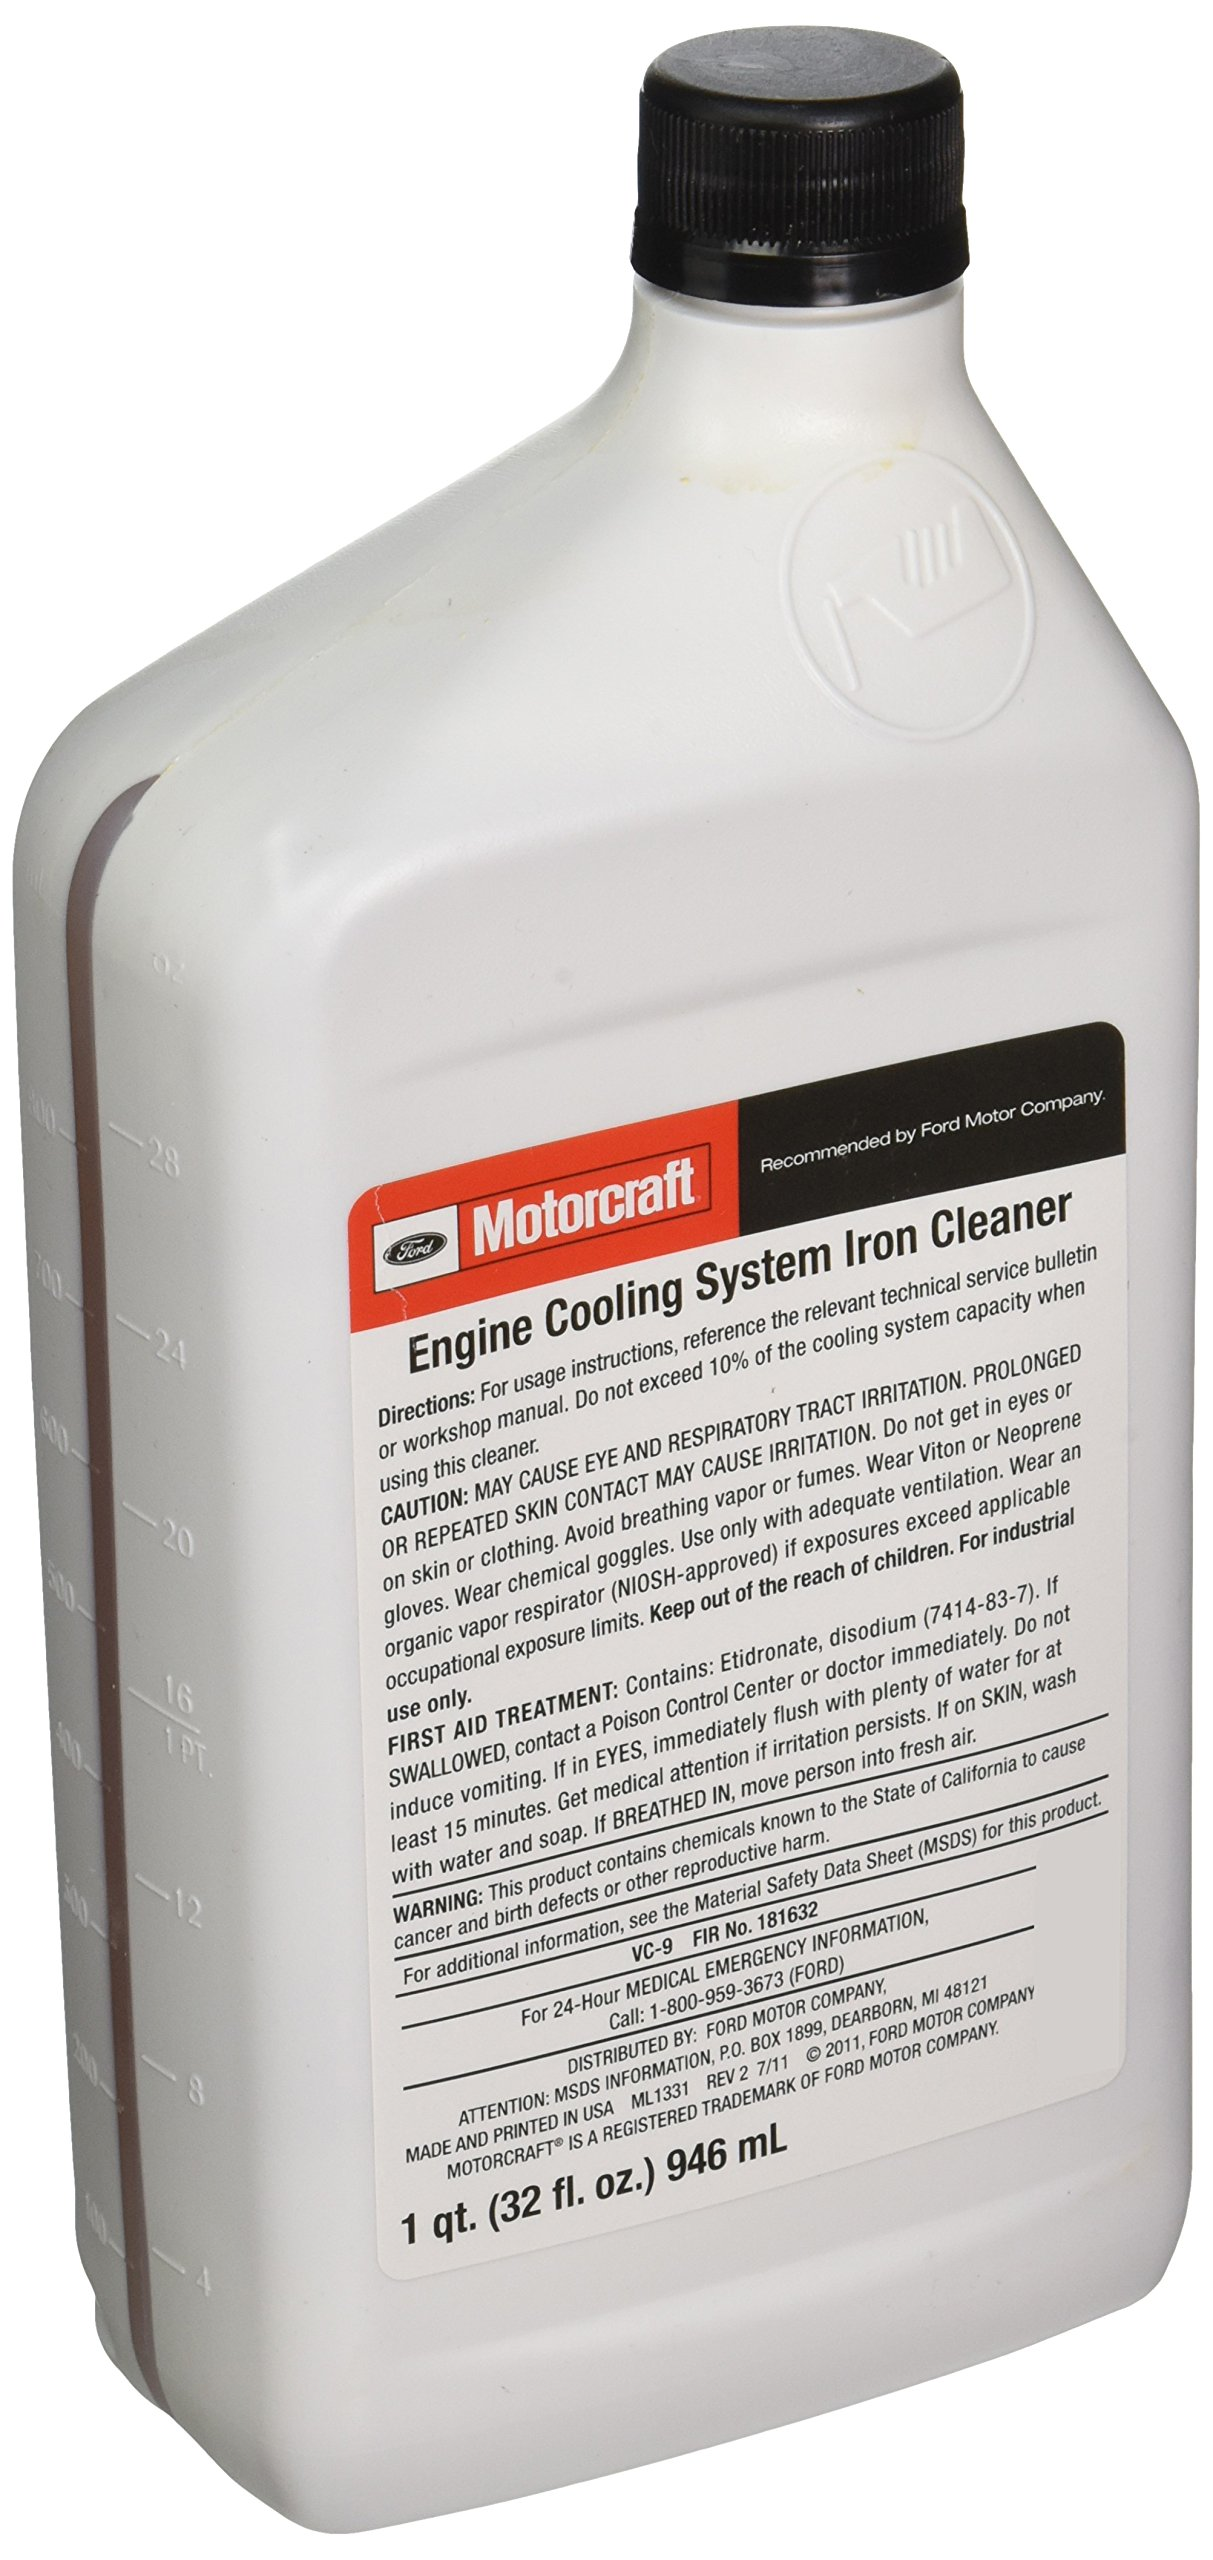 CLEANER - OXIDATION NEUTRALIZA by Motorcraft